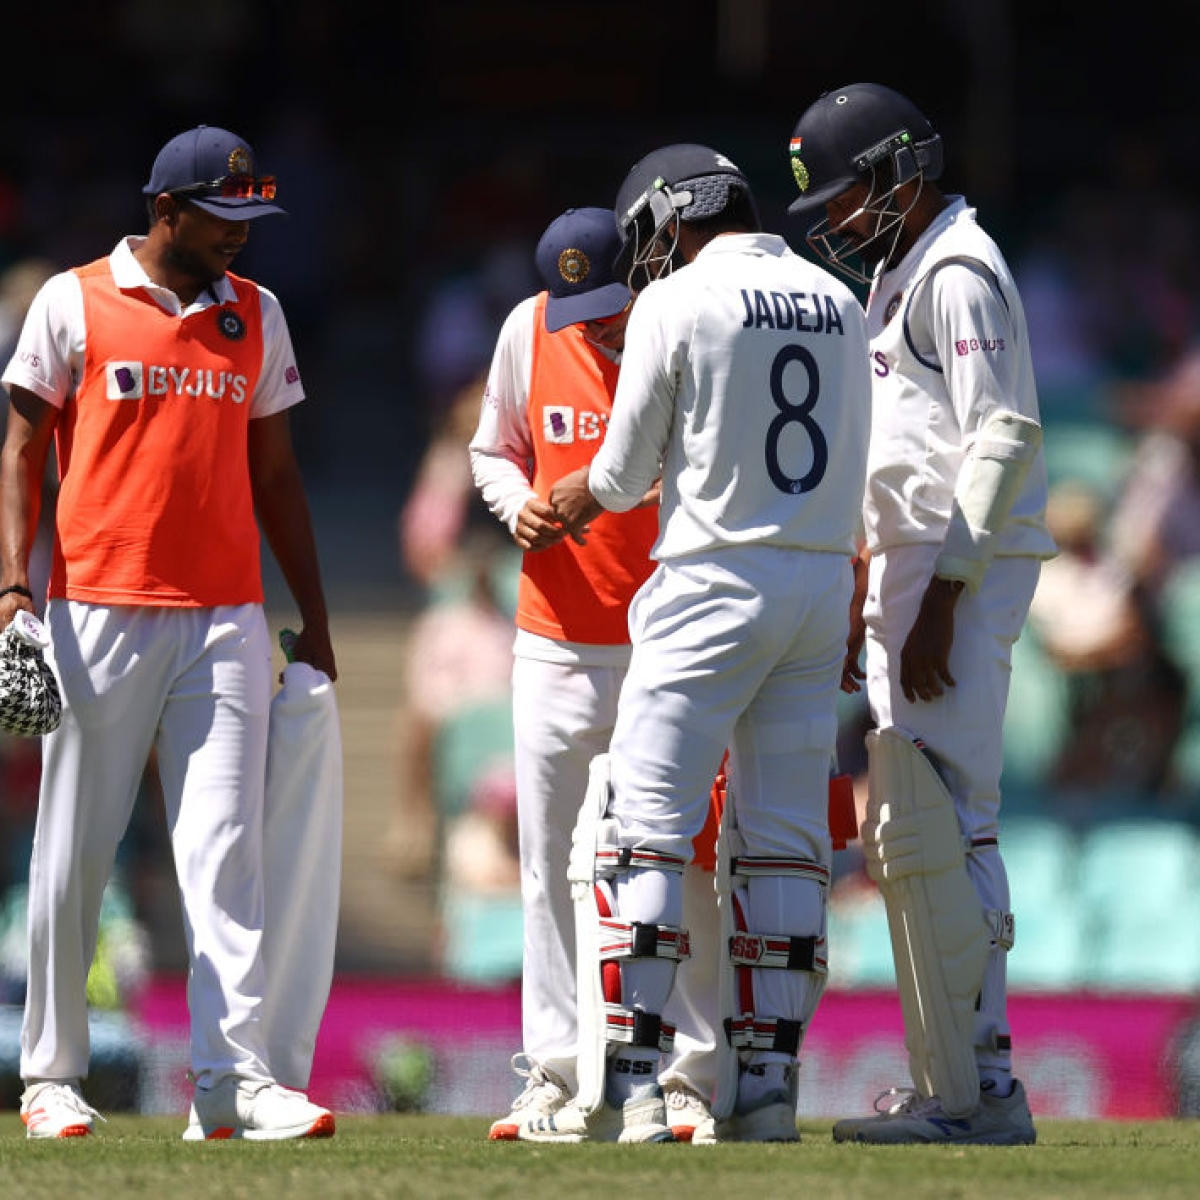 Ravindra Jadeja out of first two Tests against England, might bat with injections if required